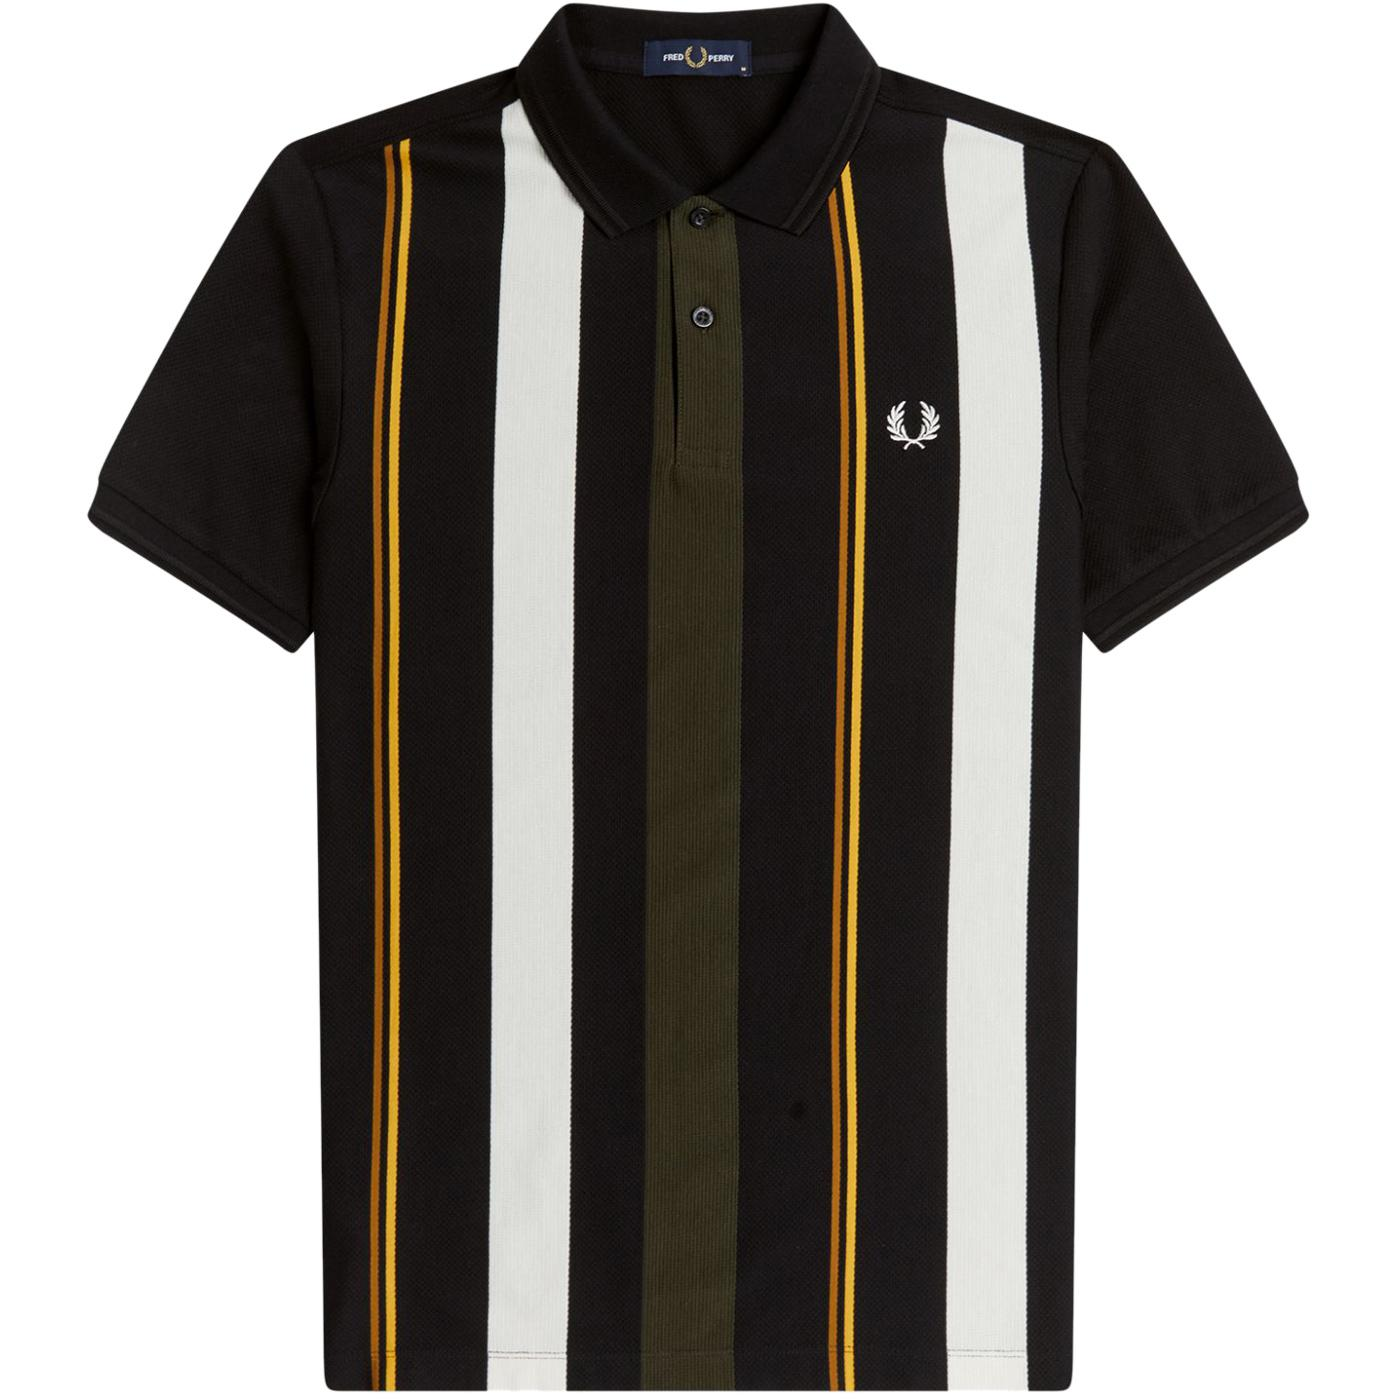 FRED PERRY Mod Knitted Stripe Pique Polo Shirt